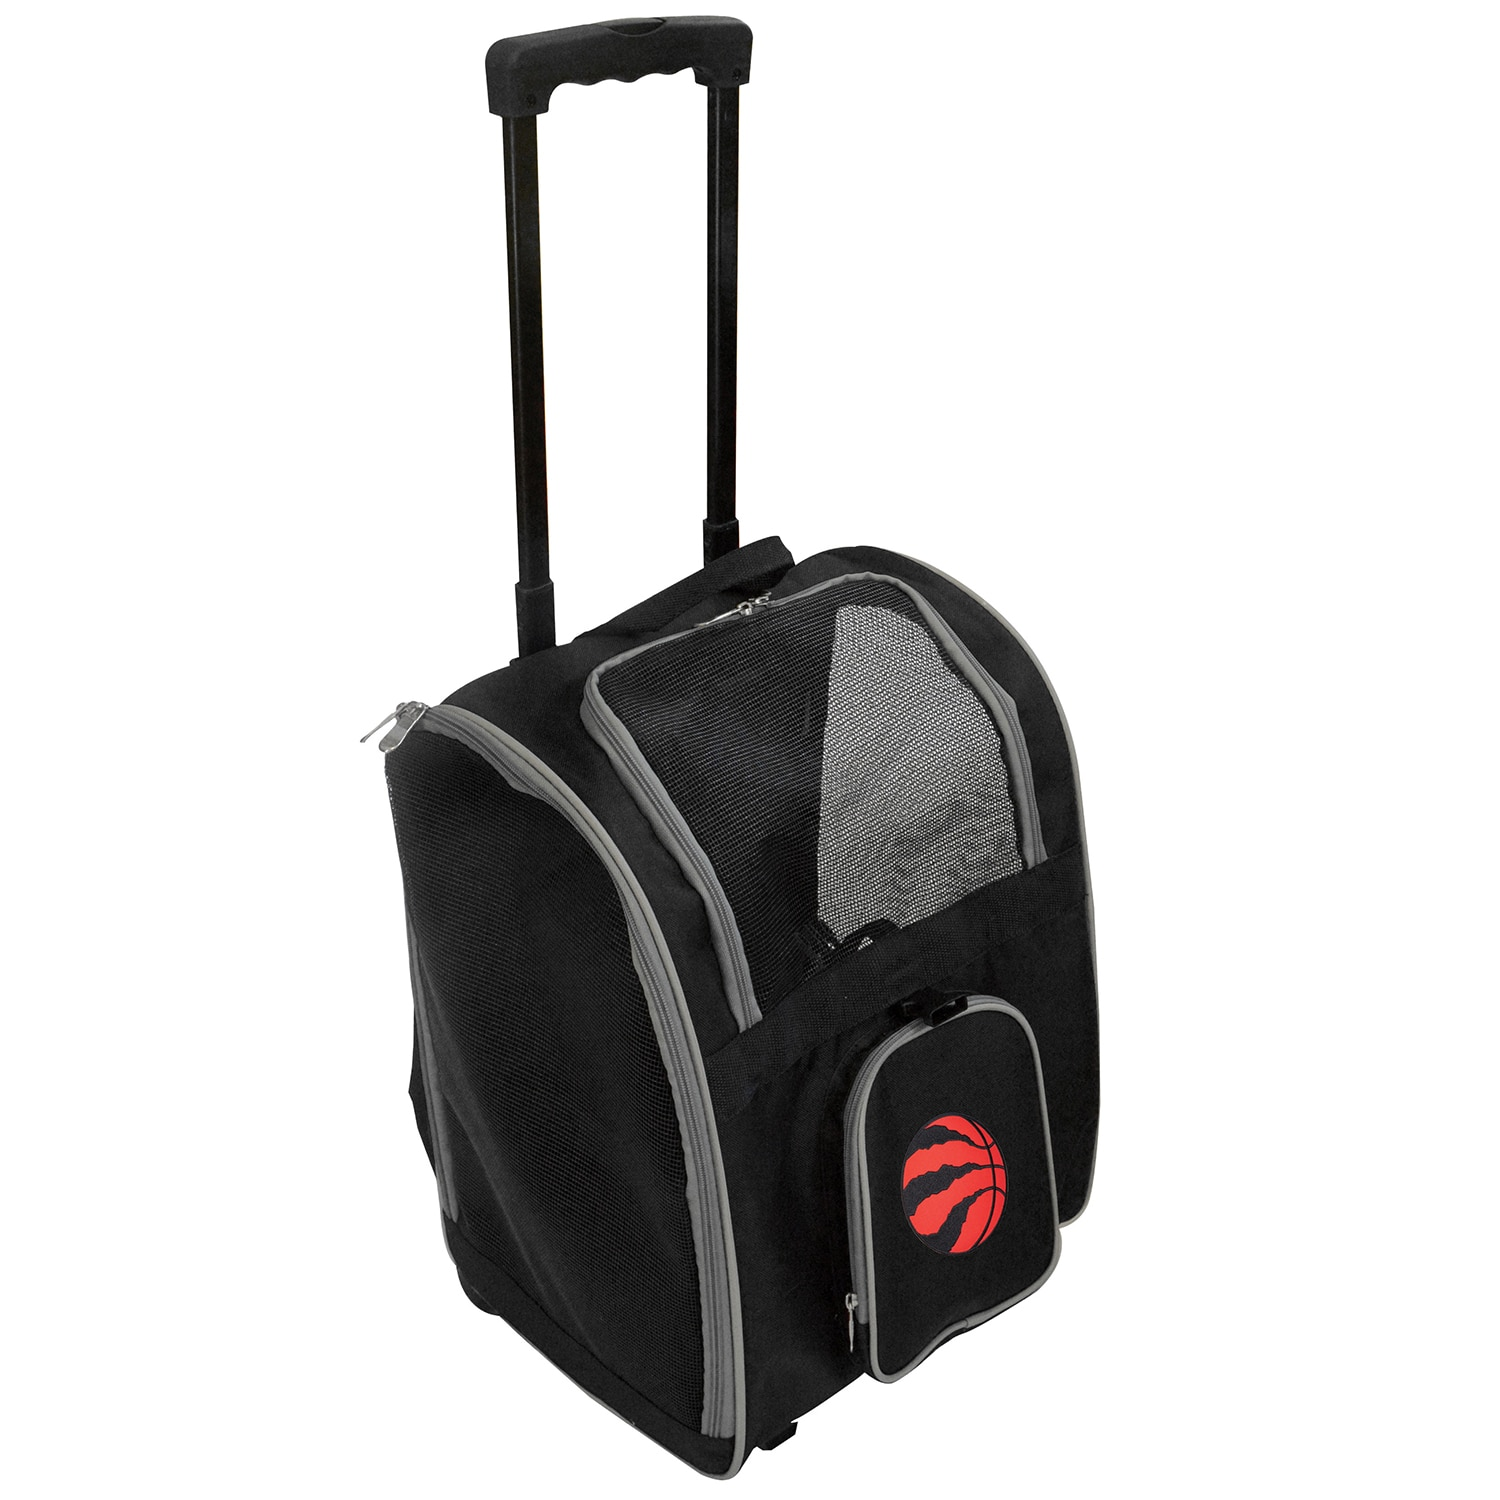 Toronto Raptors 2-Wheeled Roller Pet Carrier - Black